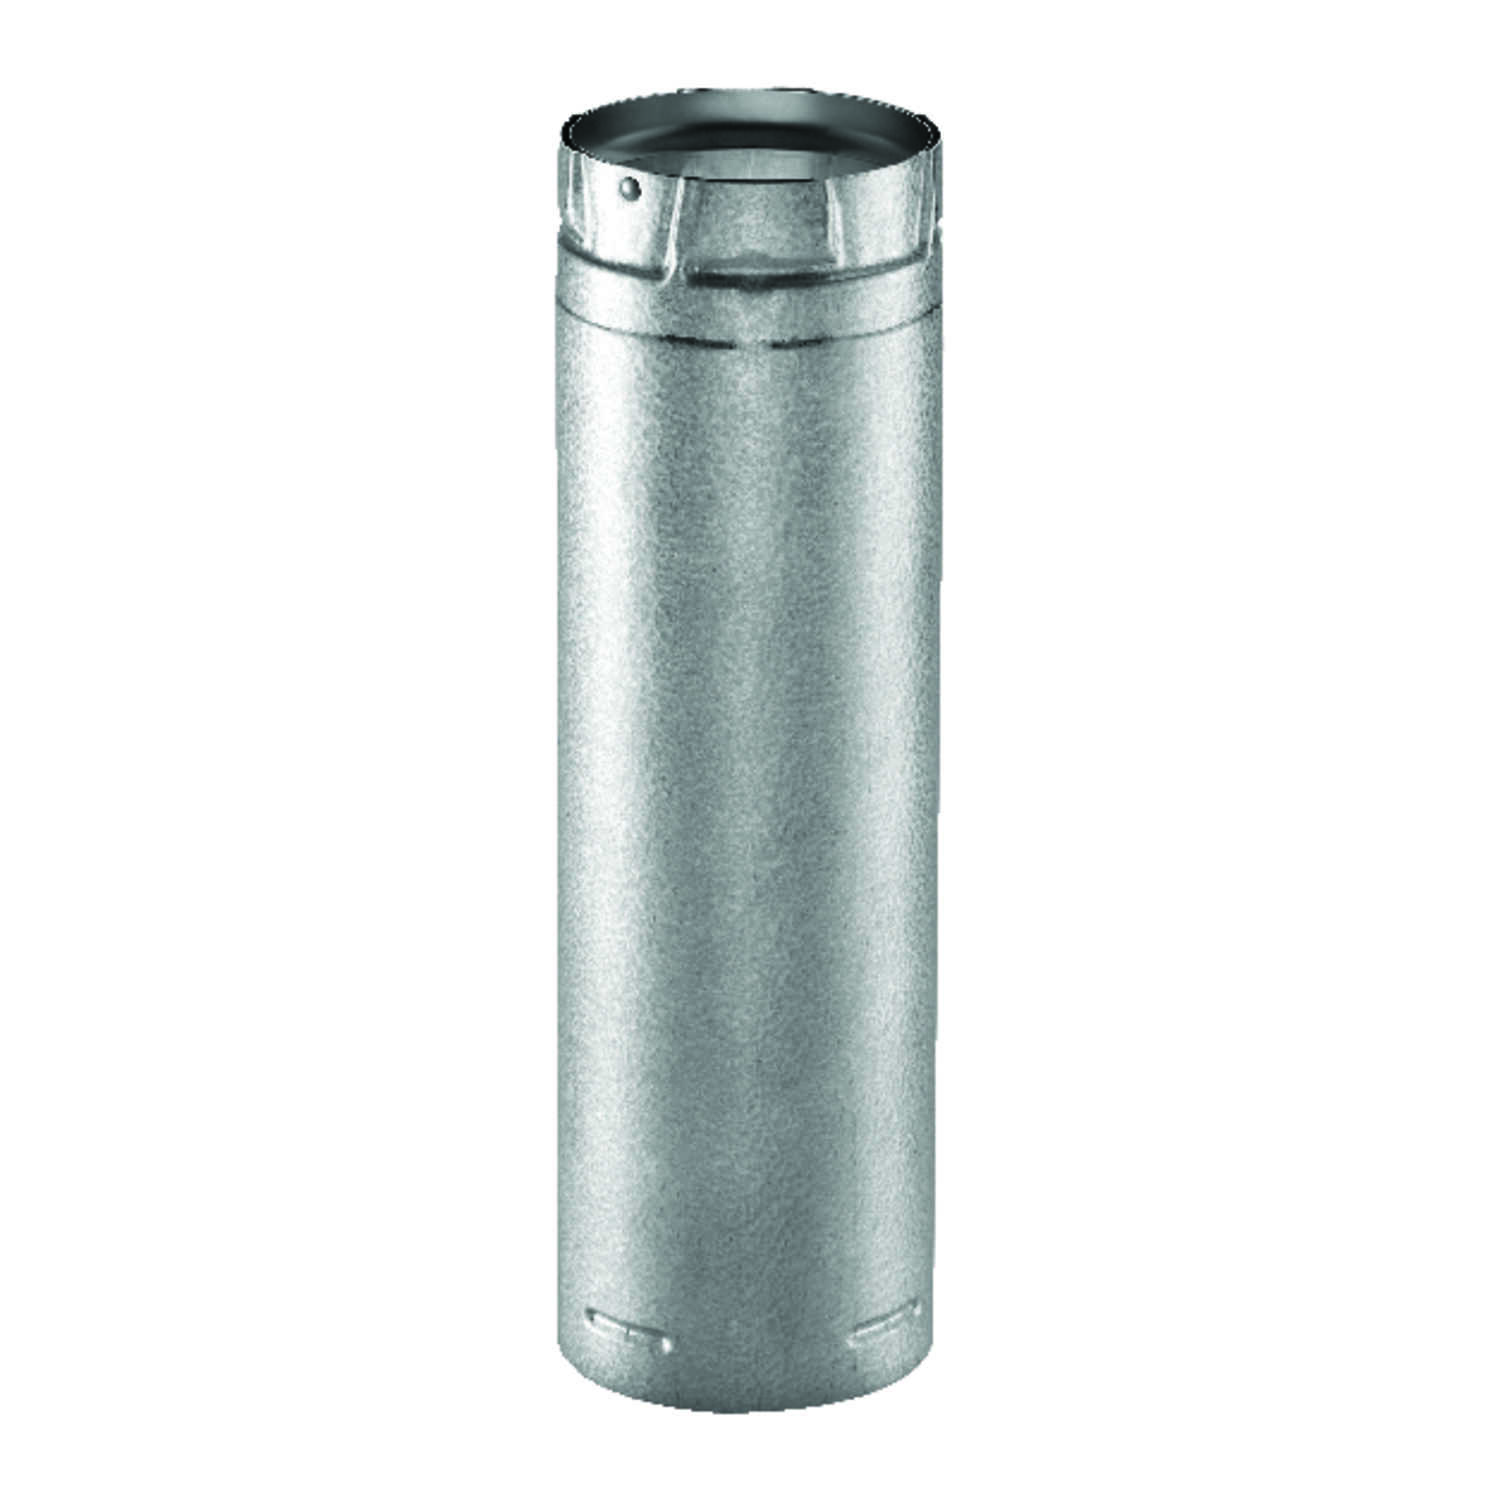 DuraVent  3 in. Dia. x 12 in. L Stainless Steel  Double Wall Stove Pipe